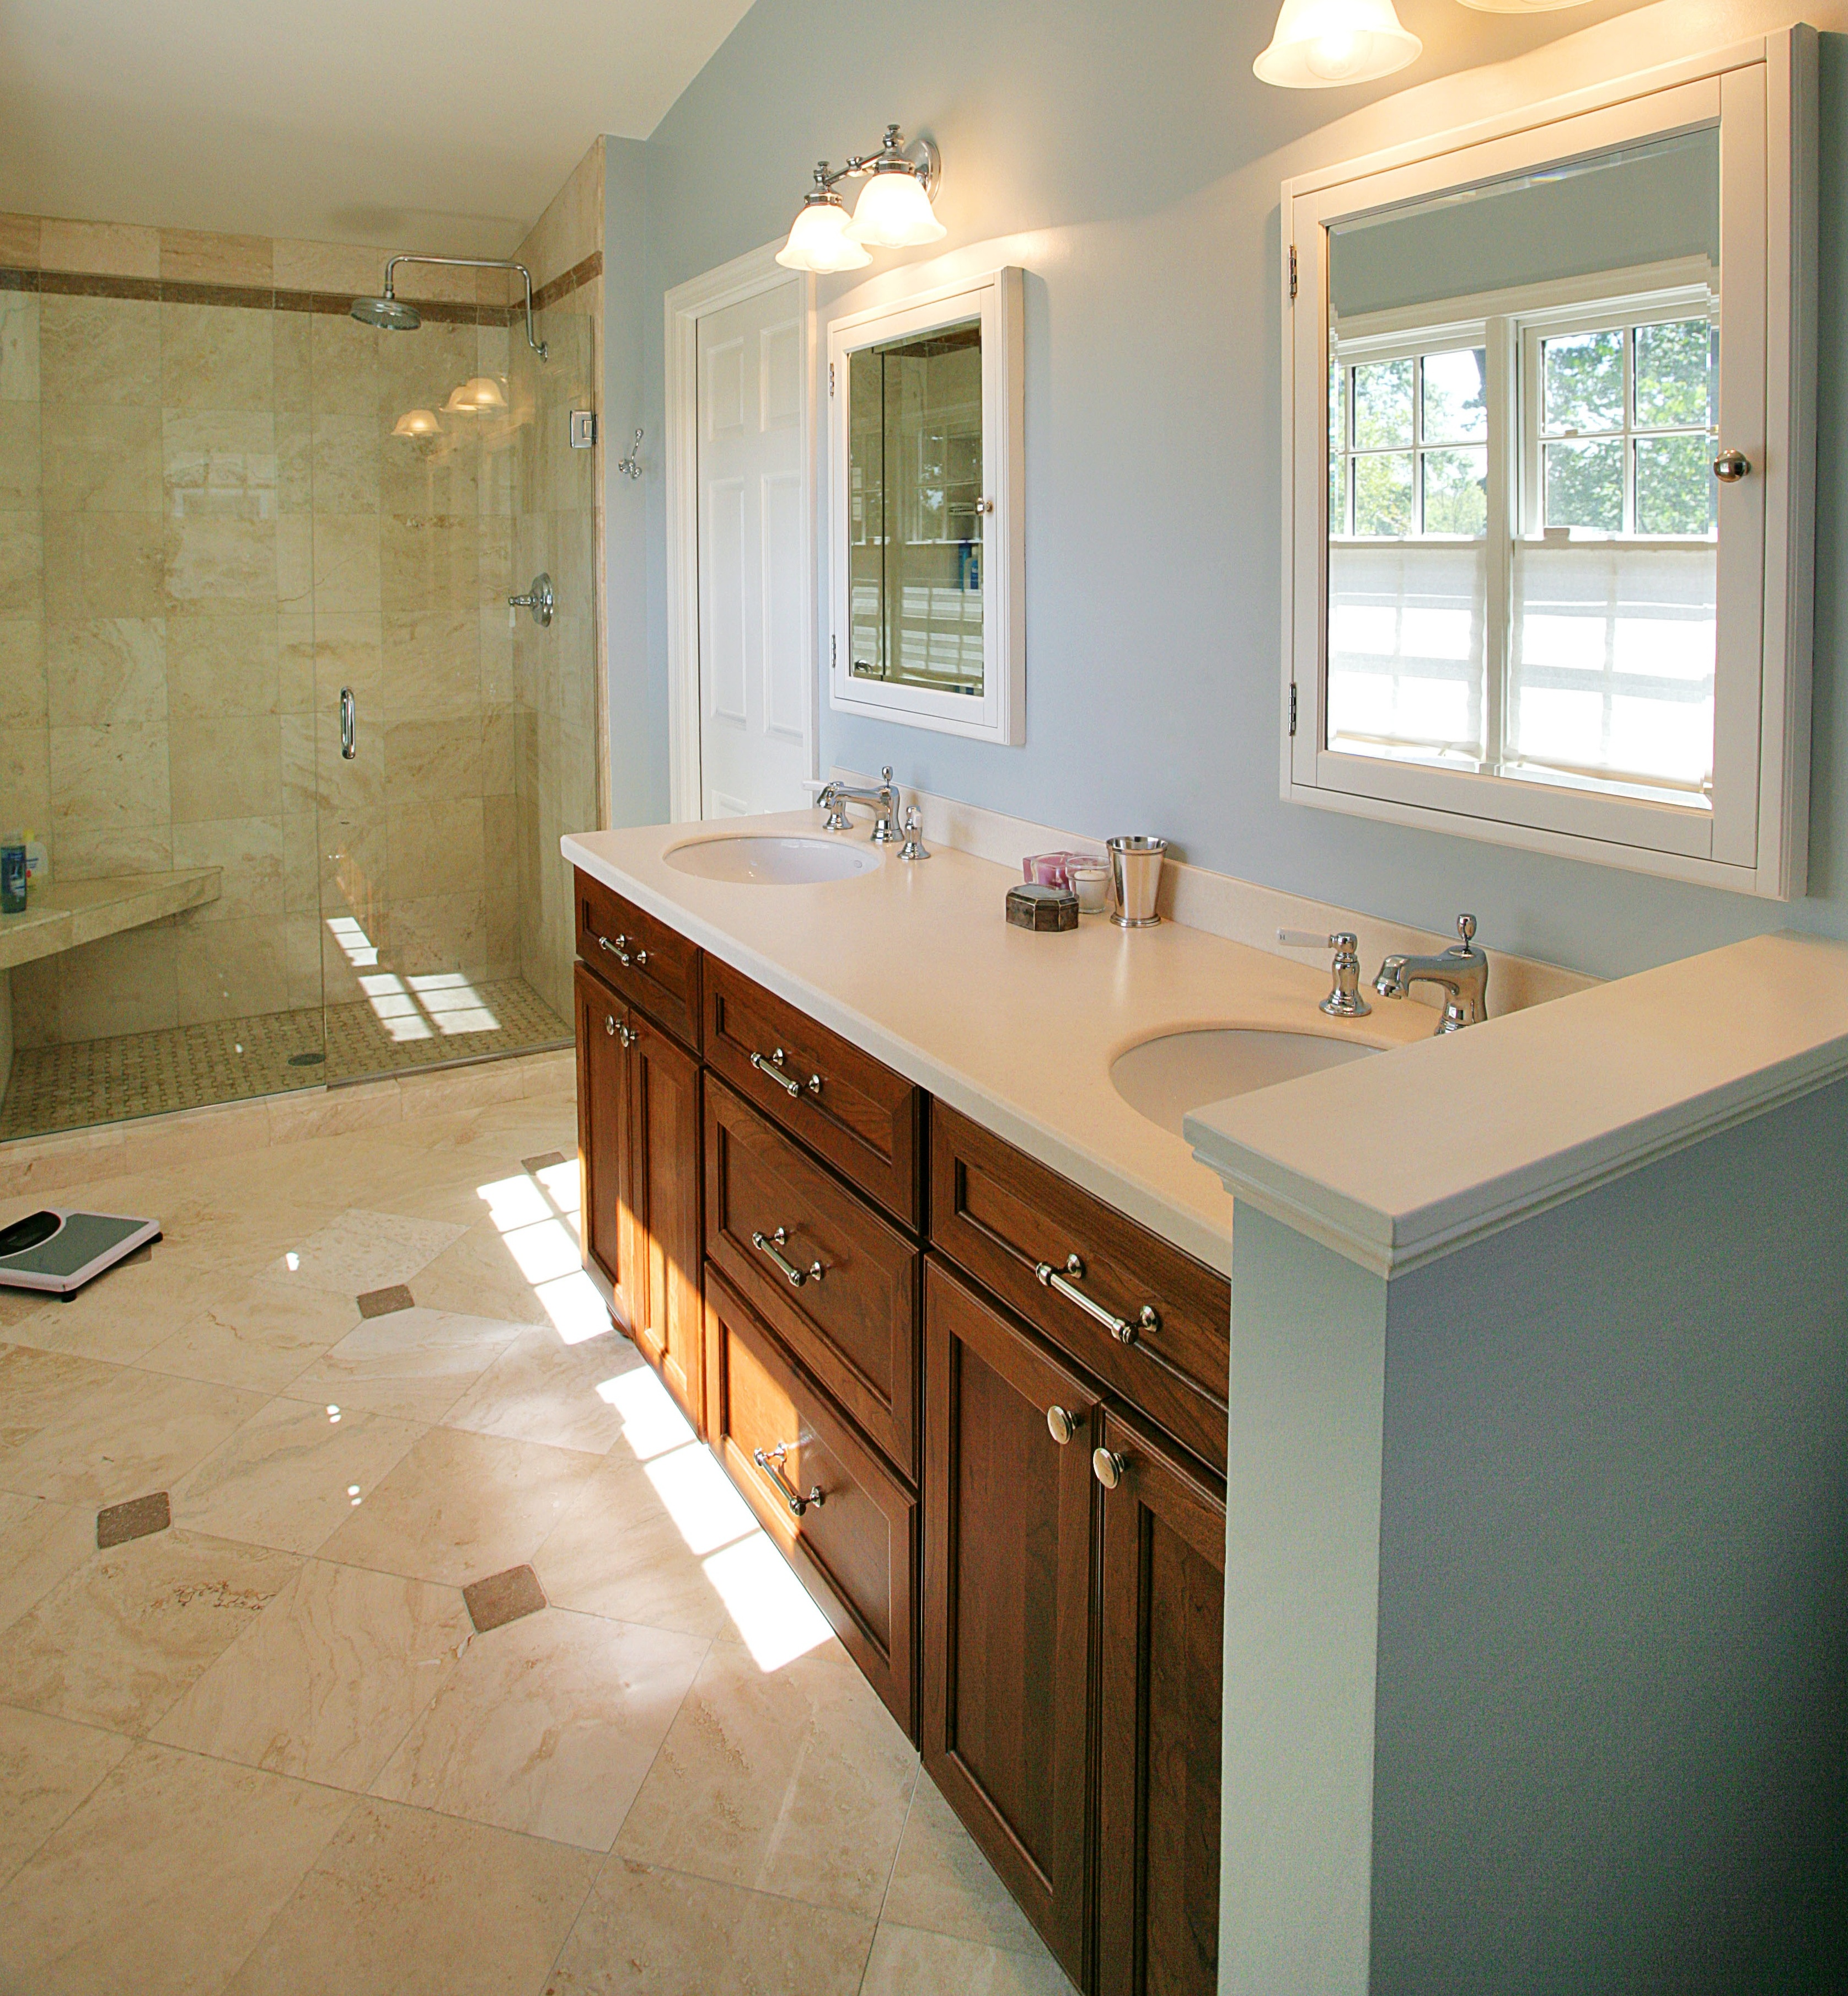 Home Remodeling Northern Virginia, Maryland And Washington